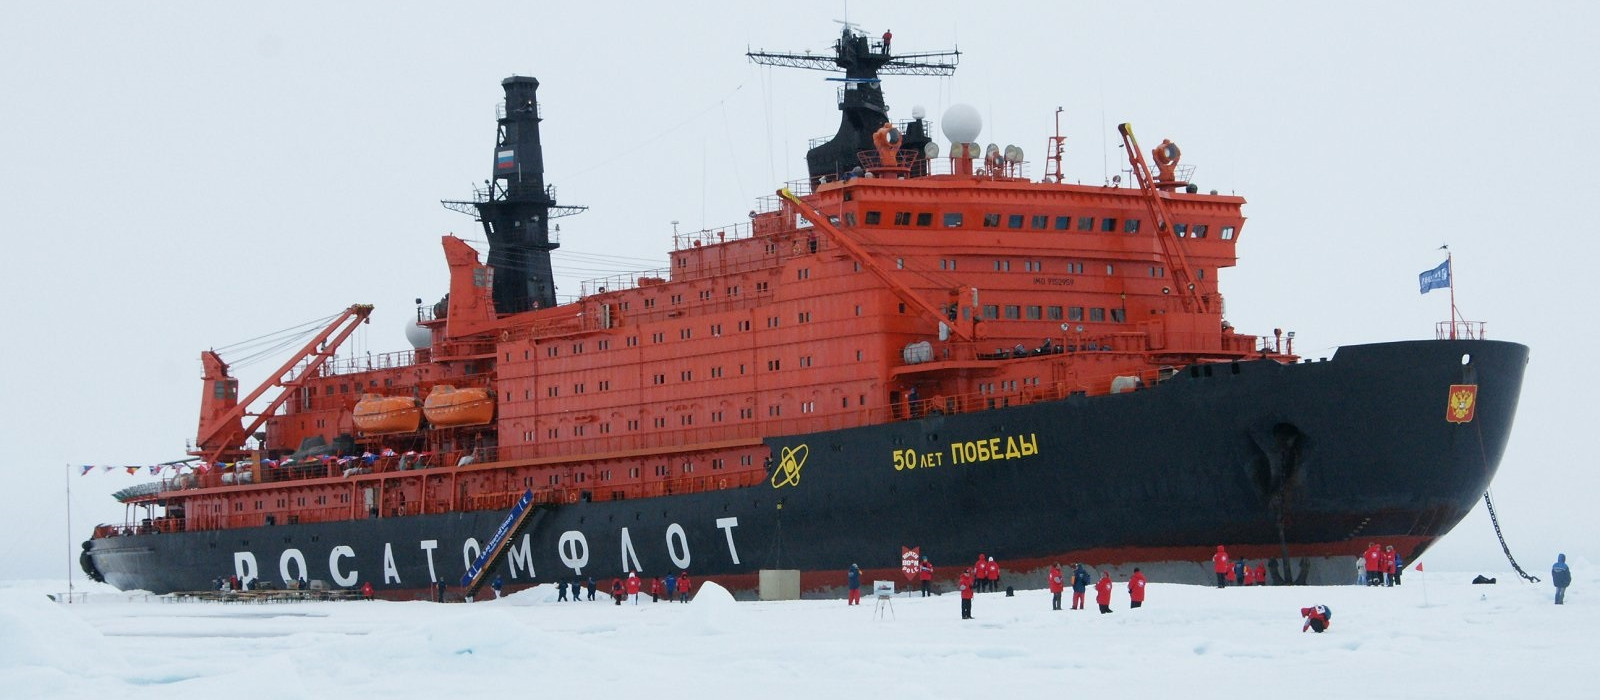 Hotel 50 Years of Victory by Quark Expeditions, The Arctic Arctic